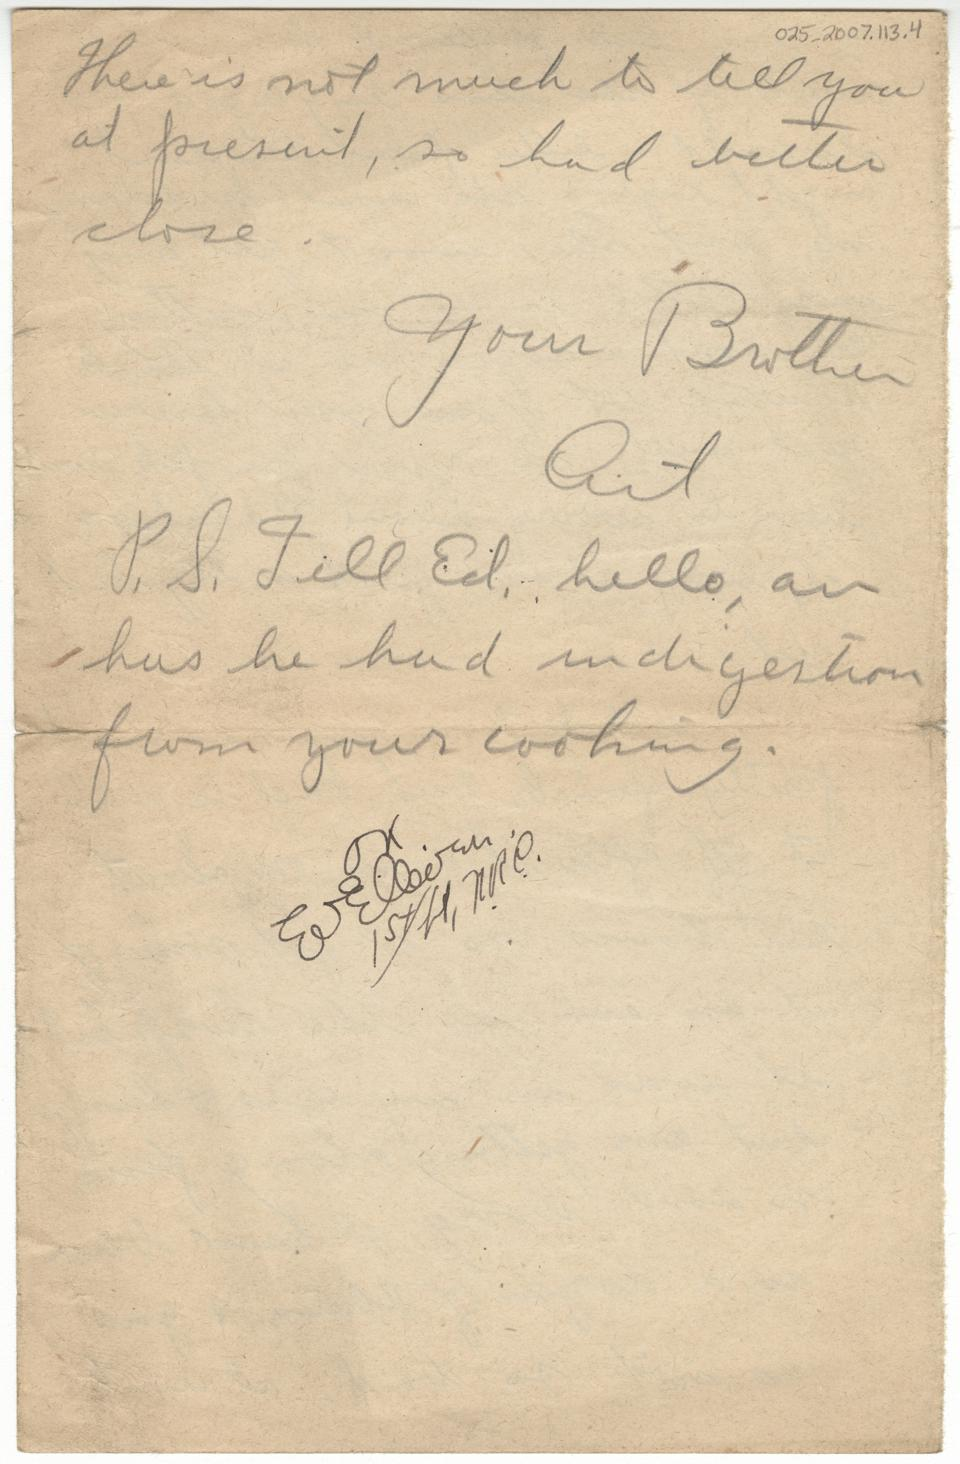 May 18, 1918 Arthur Quick to Laura, page 4.